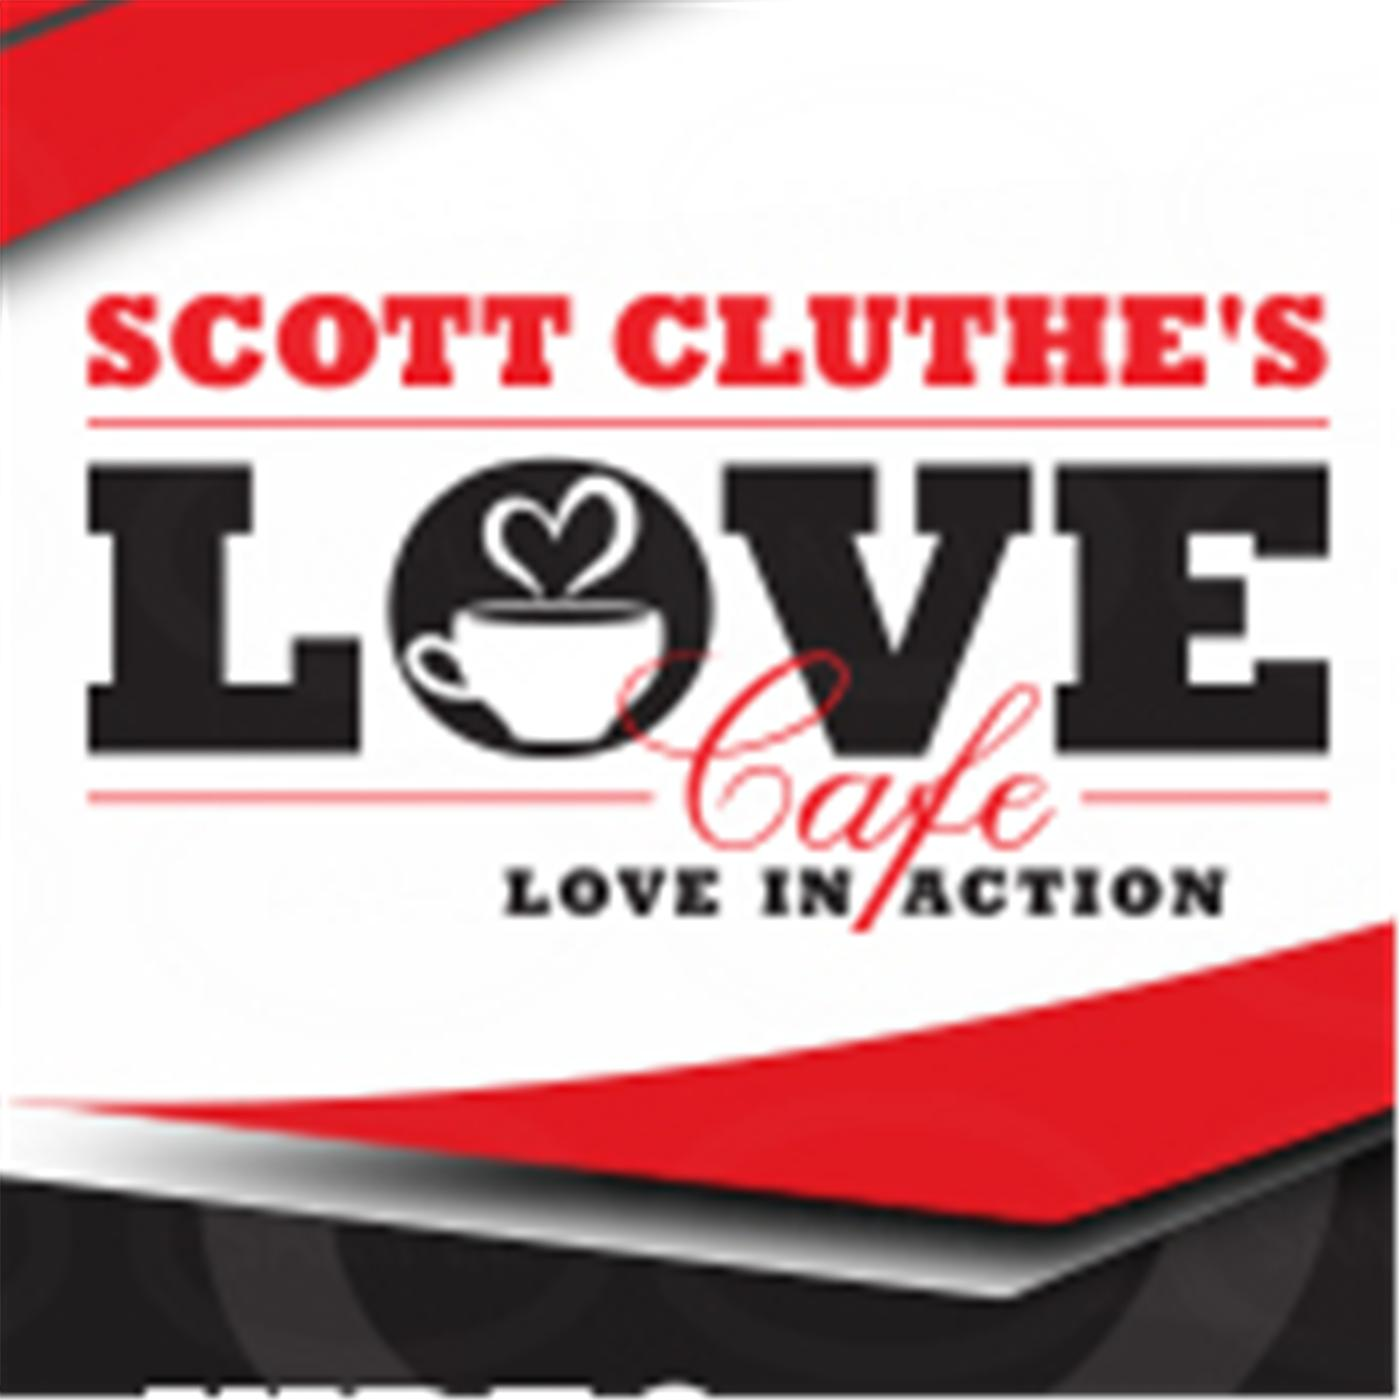 Scott Cluthe's LOVE Cafe